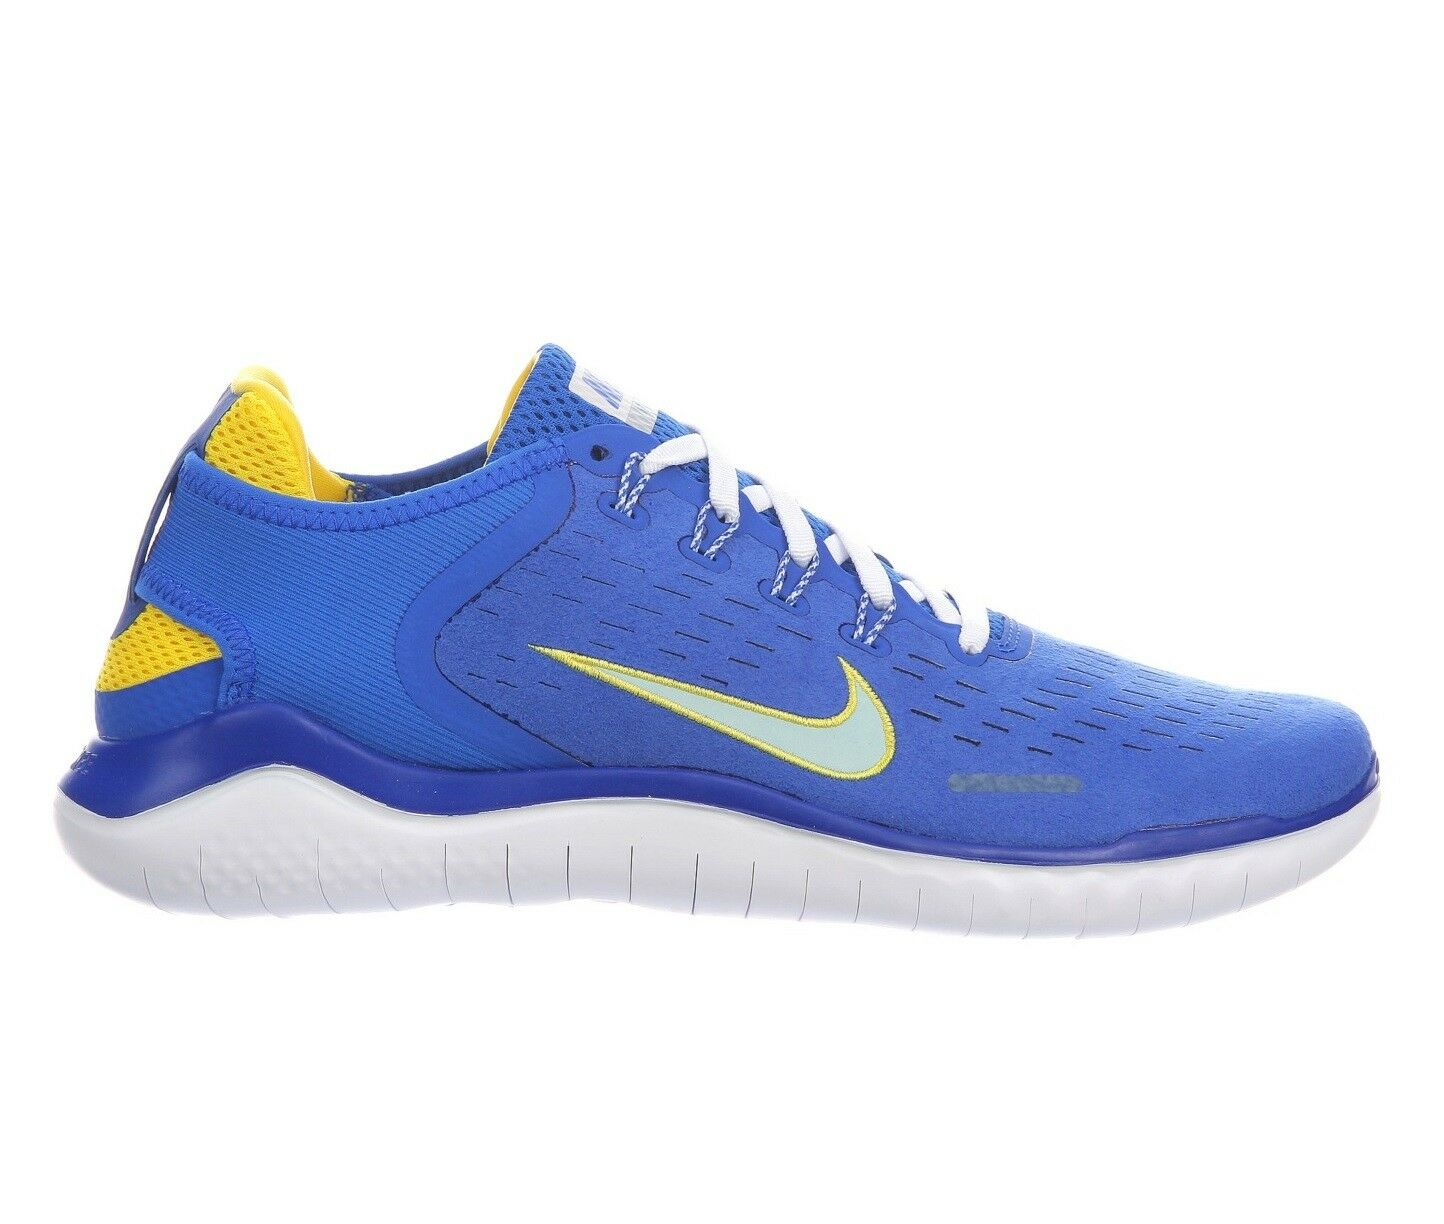 Nike Free RN 2018 DNA Mens AH7870-400 Blue Cobalt Citron Running Shoes Size 6